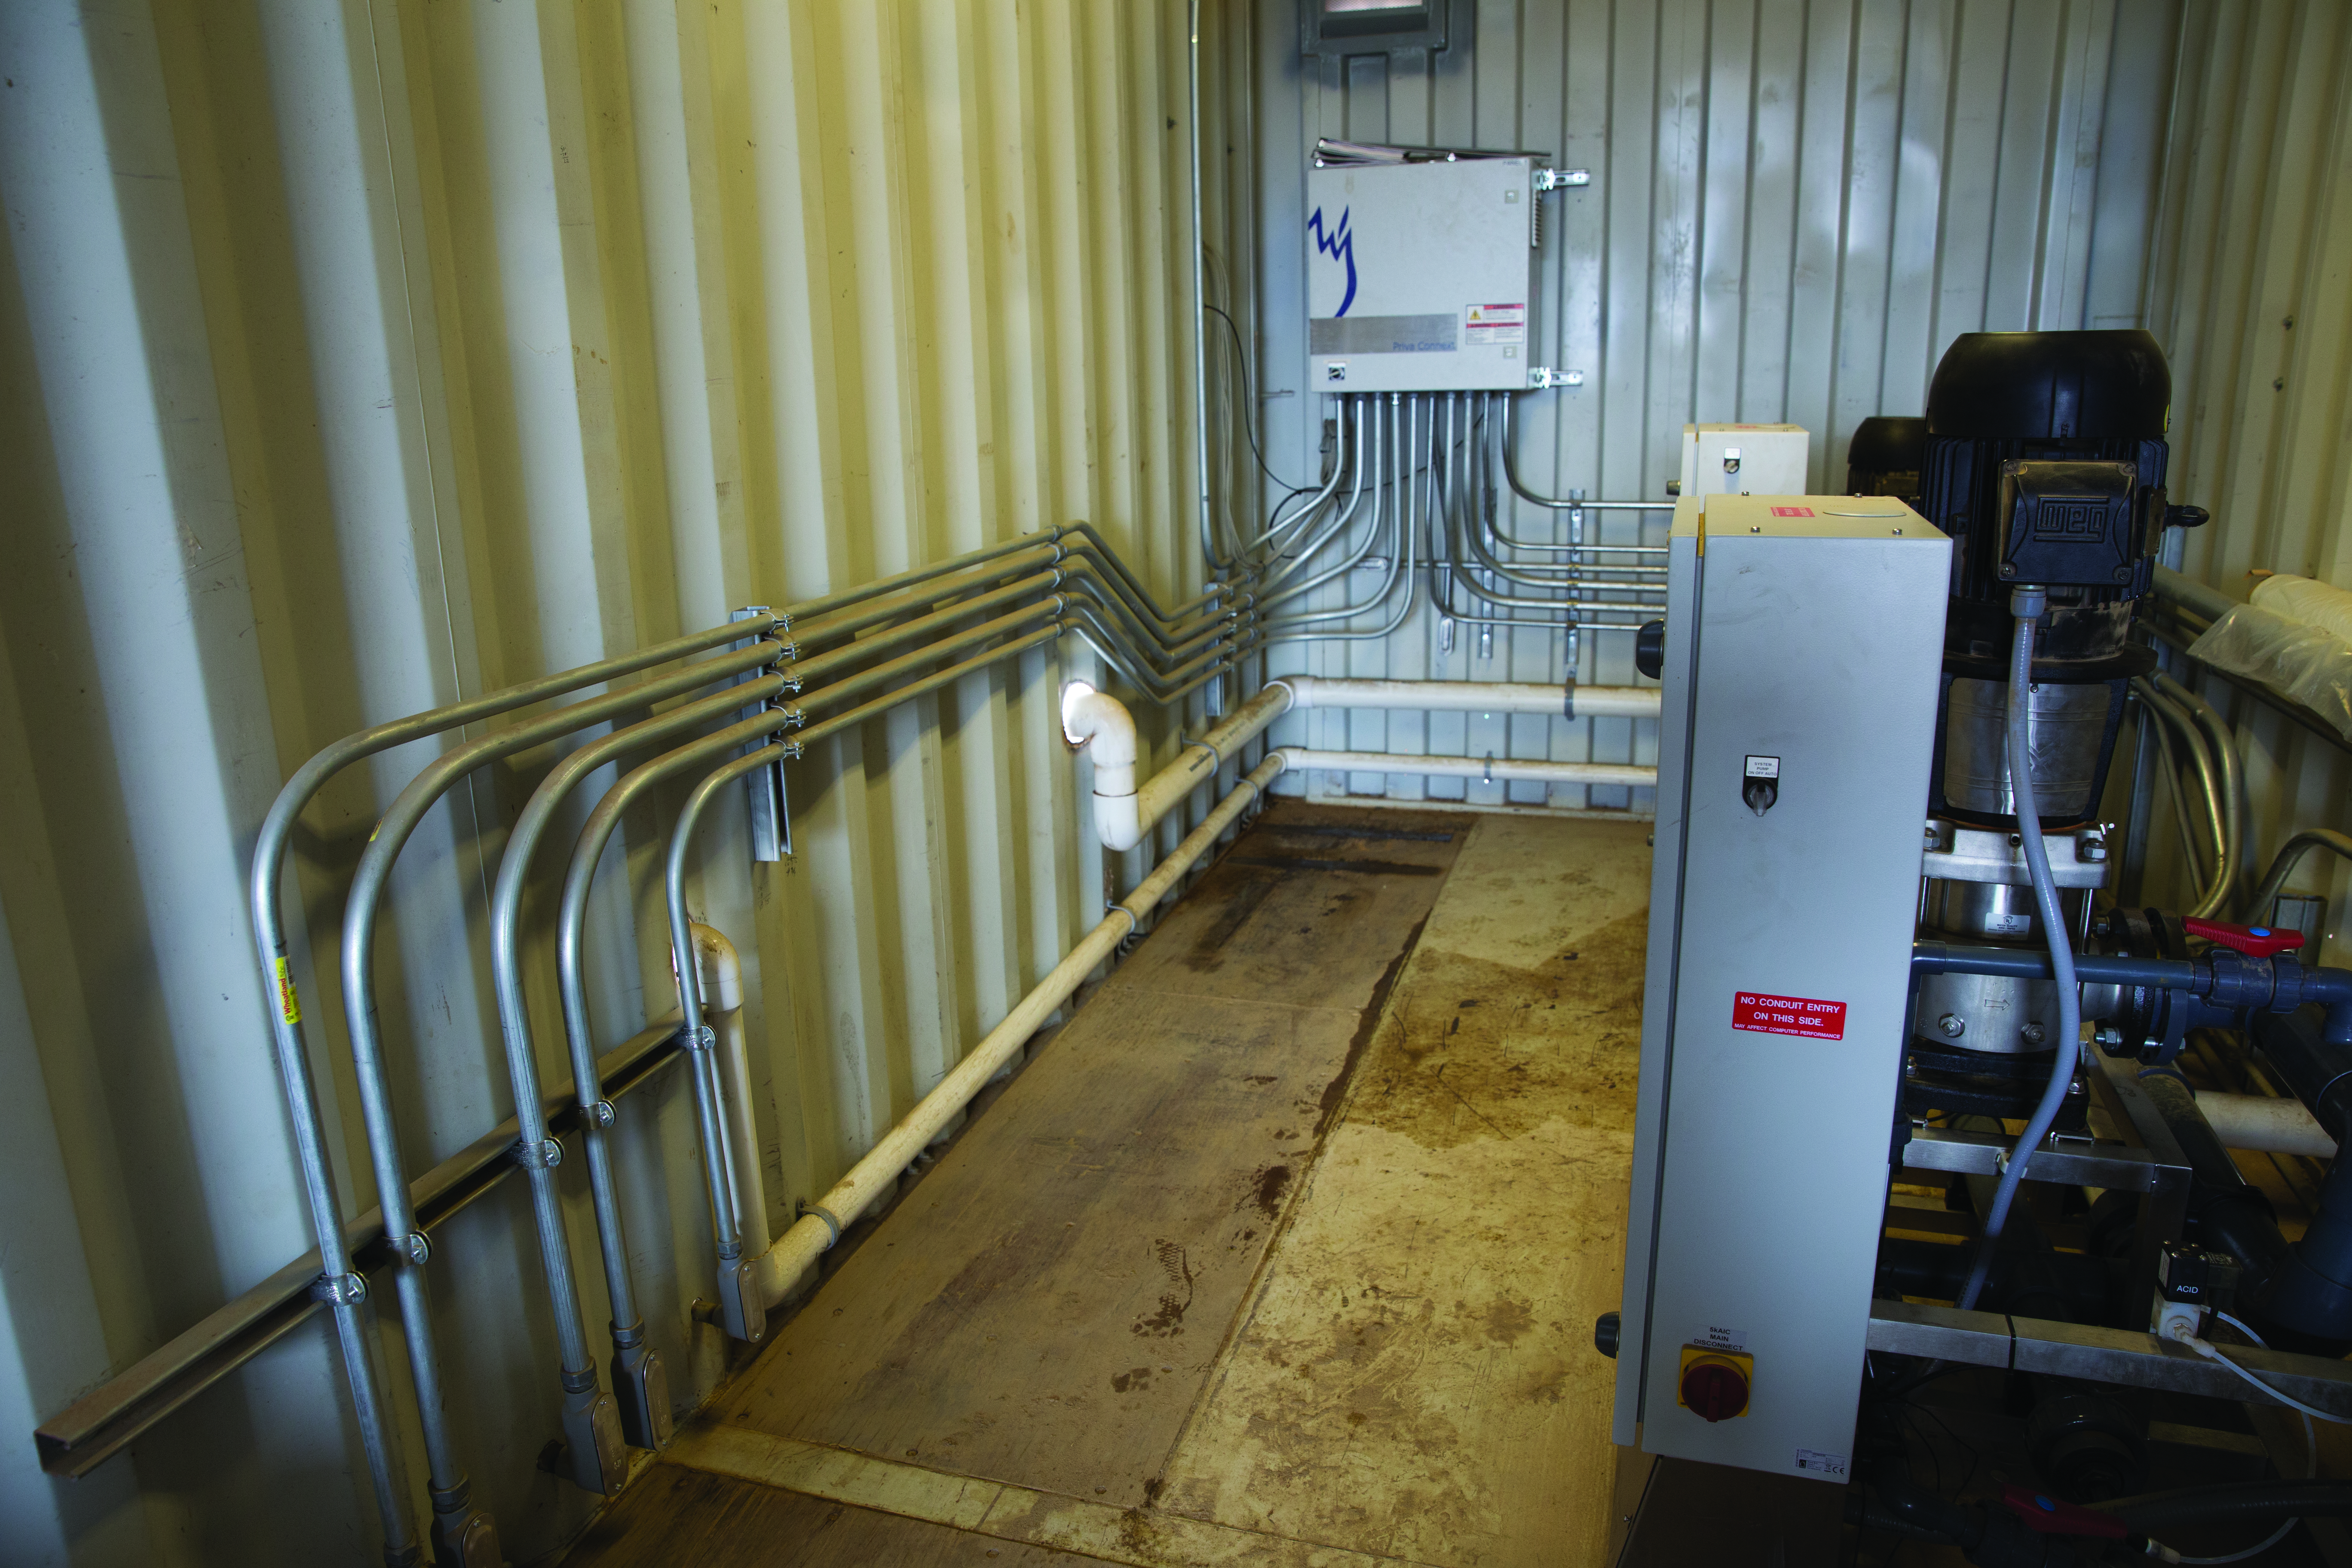 A climate-controlled Priva container houses the pump and control panel.